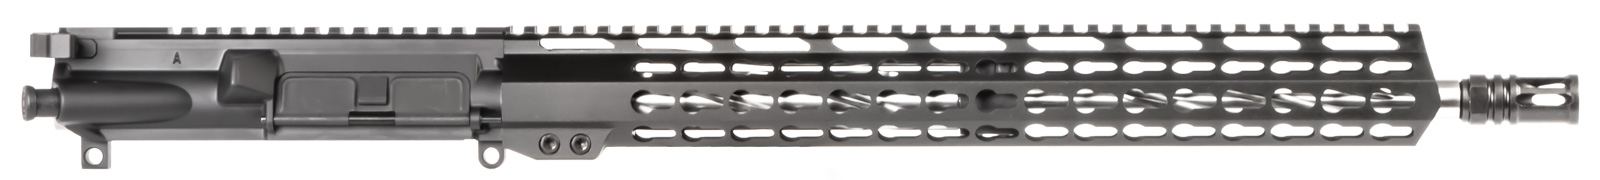 ar15-complete-upper-assembly-16-inches-spiral-fluted-keymod-rail-160004